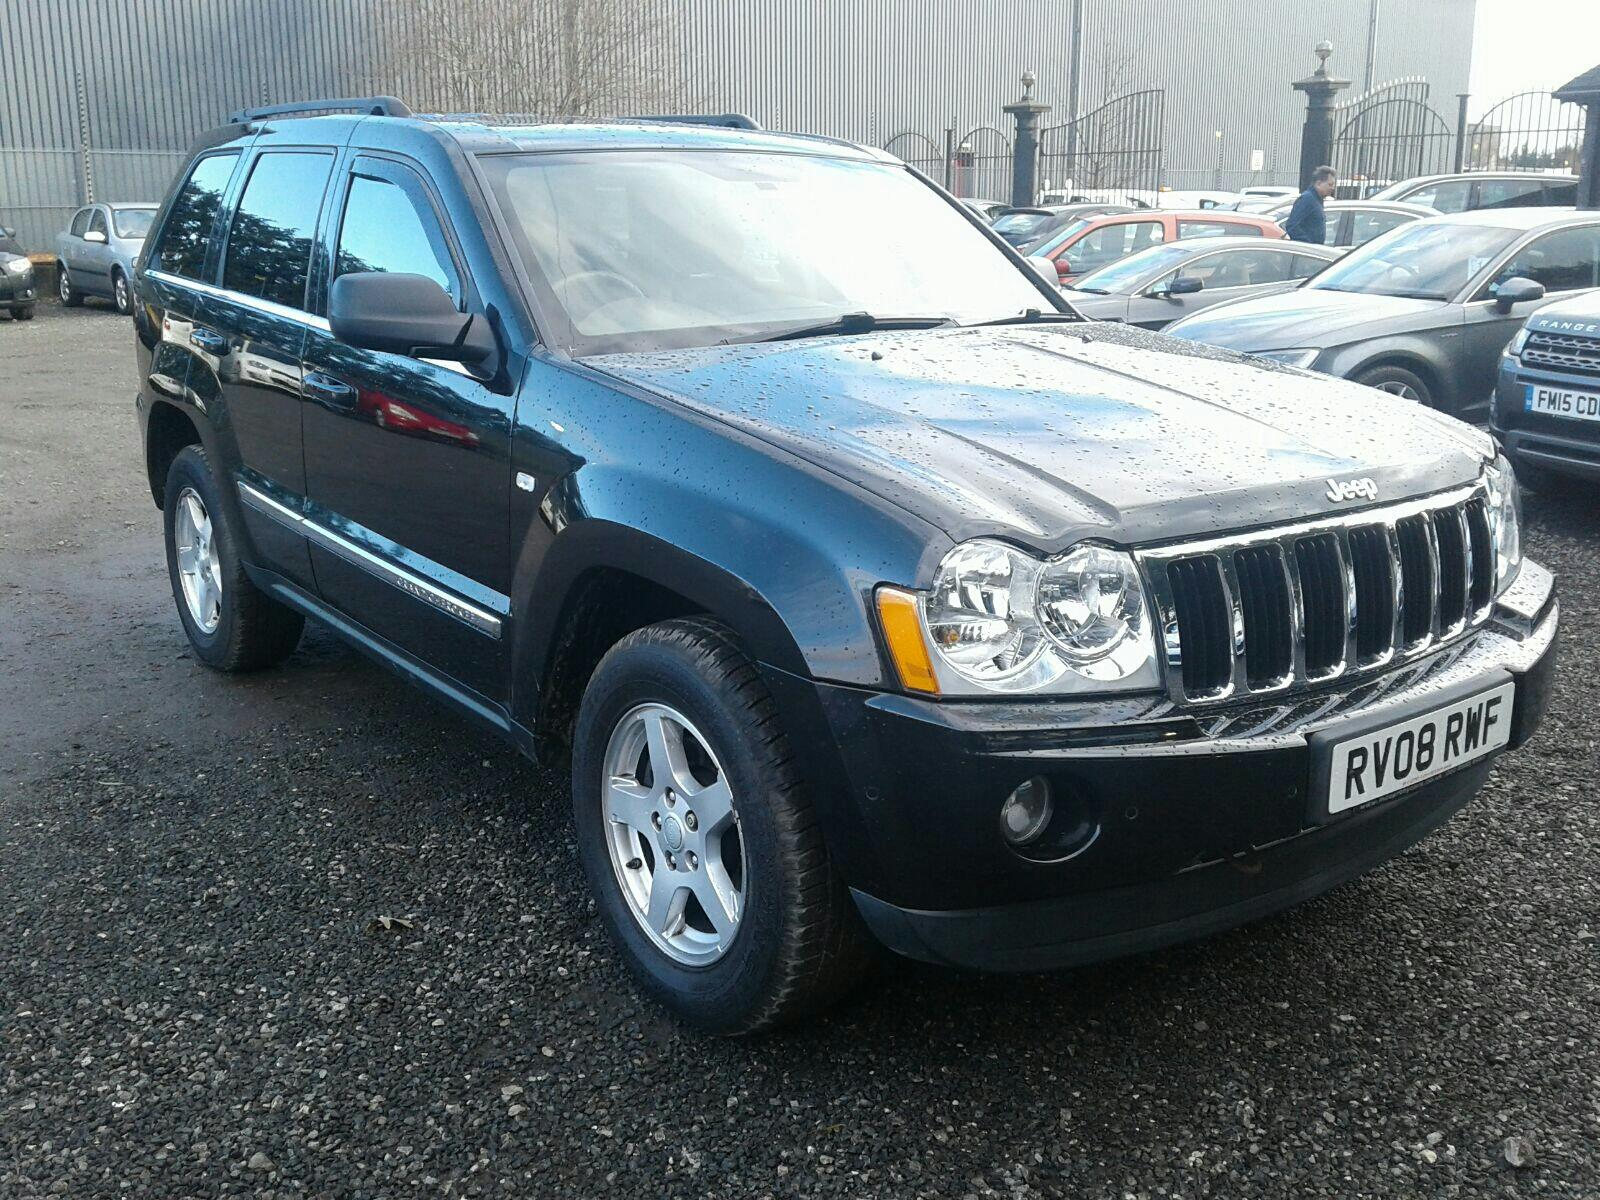 2008 Jeep Grand Limited CRD 2987 Diesel Automatic 5 Speed 5 Door 4x4